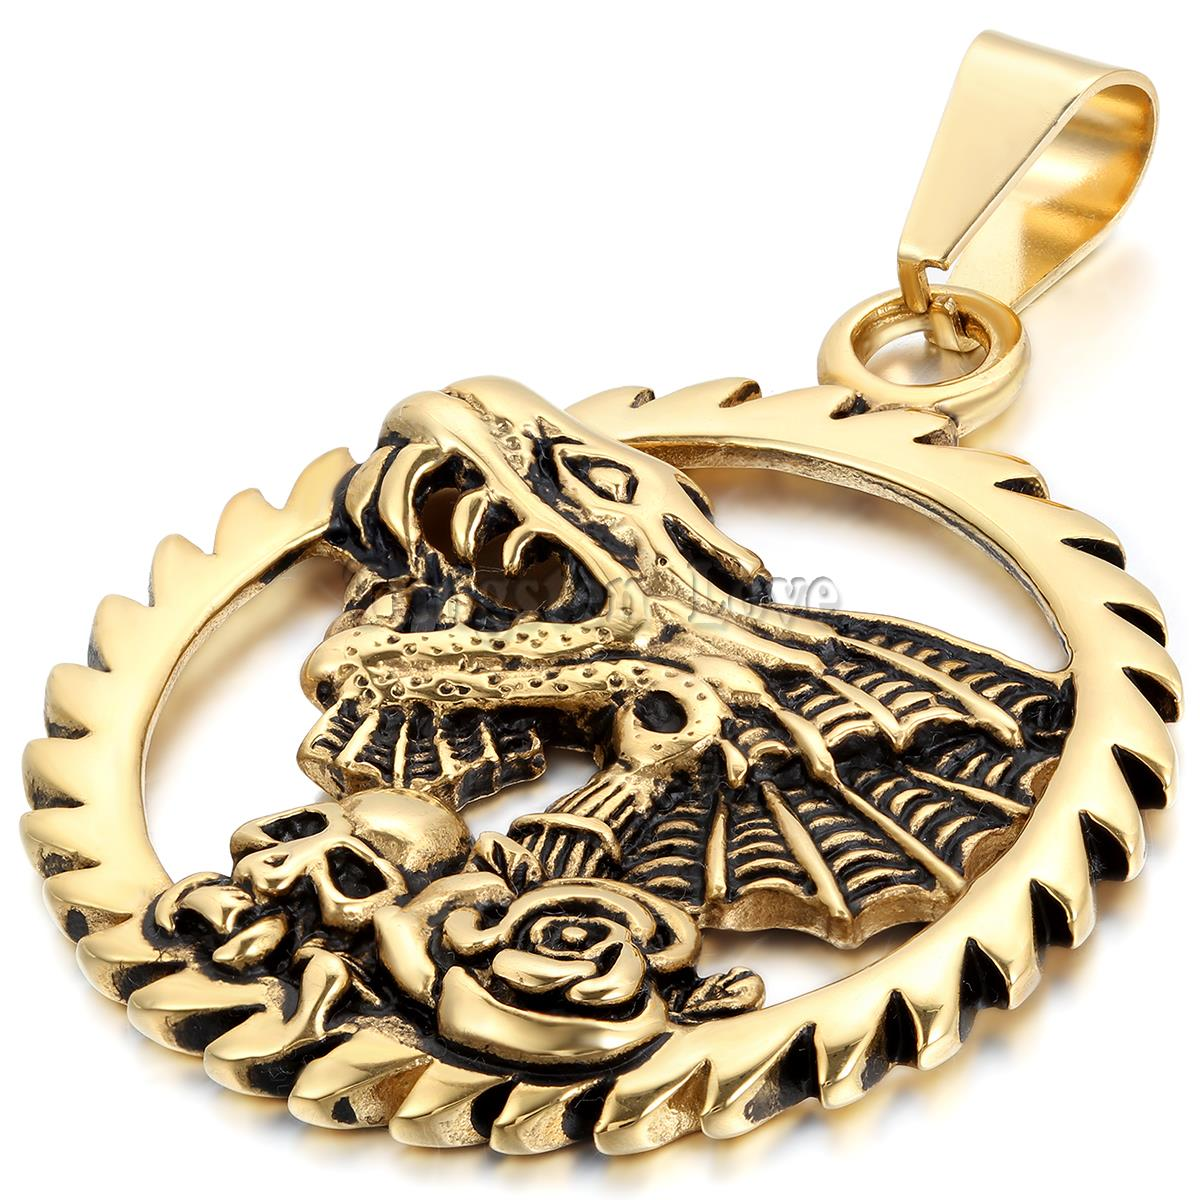 New Vintage Stainless Steel Necklaces Men Dragon Rose Skull Pendant Necklace 22 inch Chain Black Gold Design Fashion collar(China (Mainland))